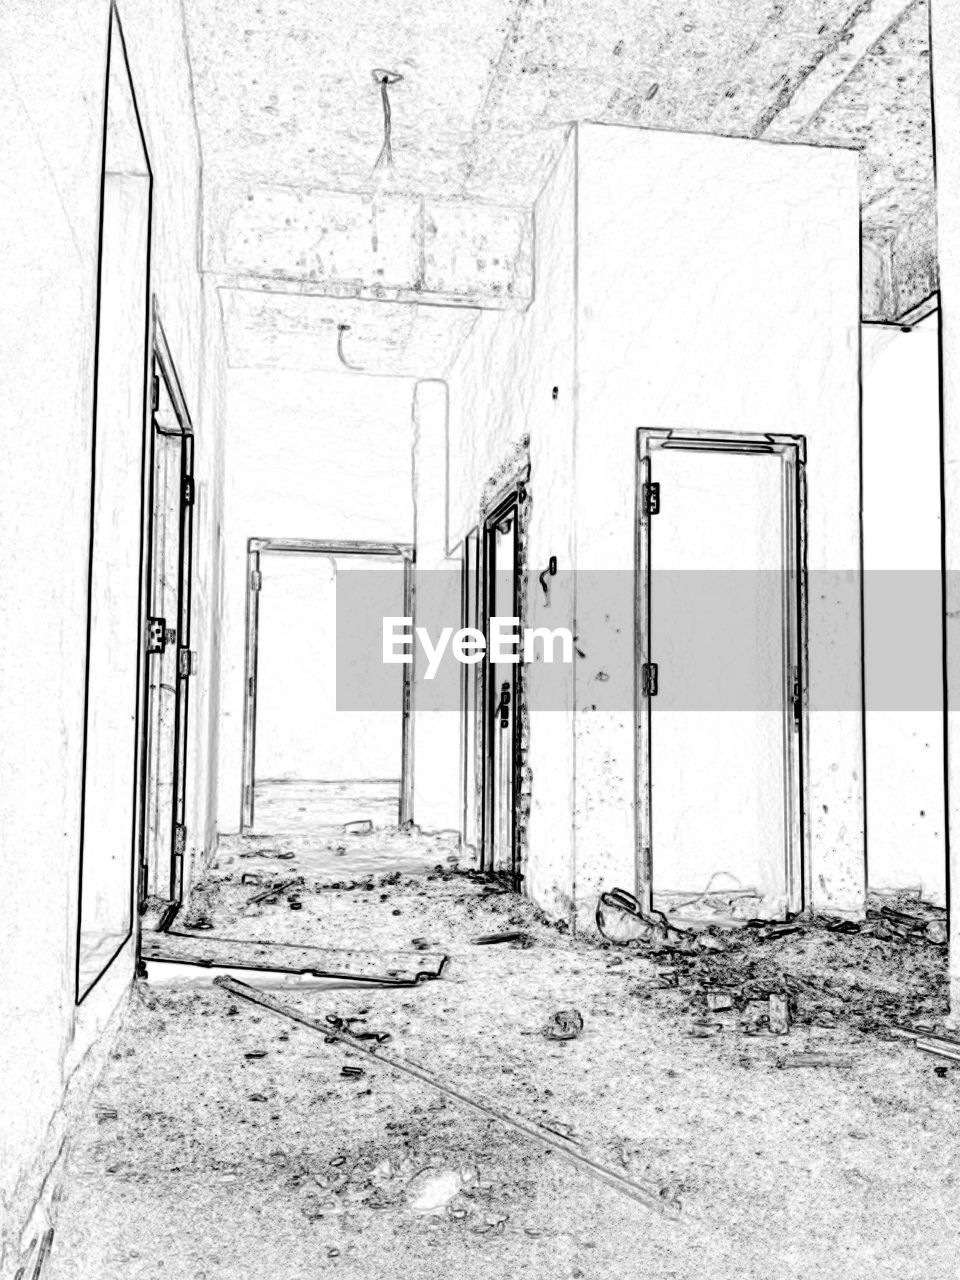 entrance, architecture, door, built structure, building, abandoned, no people, wall - building feature, old, damaged, indoors, day, flooring, run-down, open, weathered, empty, house, deterioration, dirty, ruined